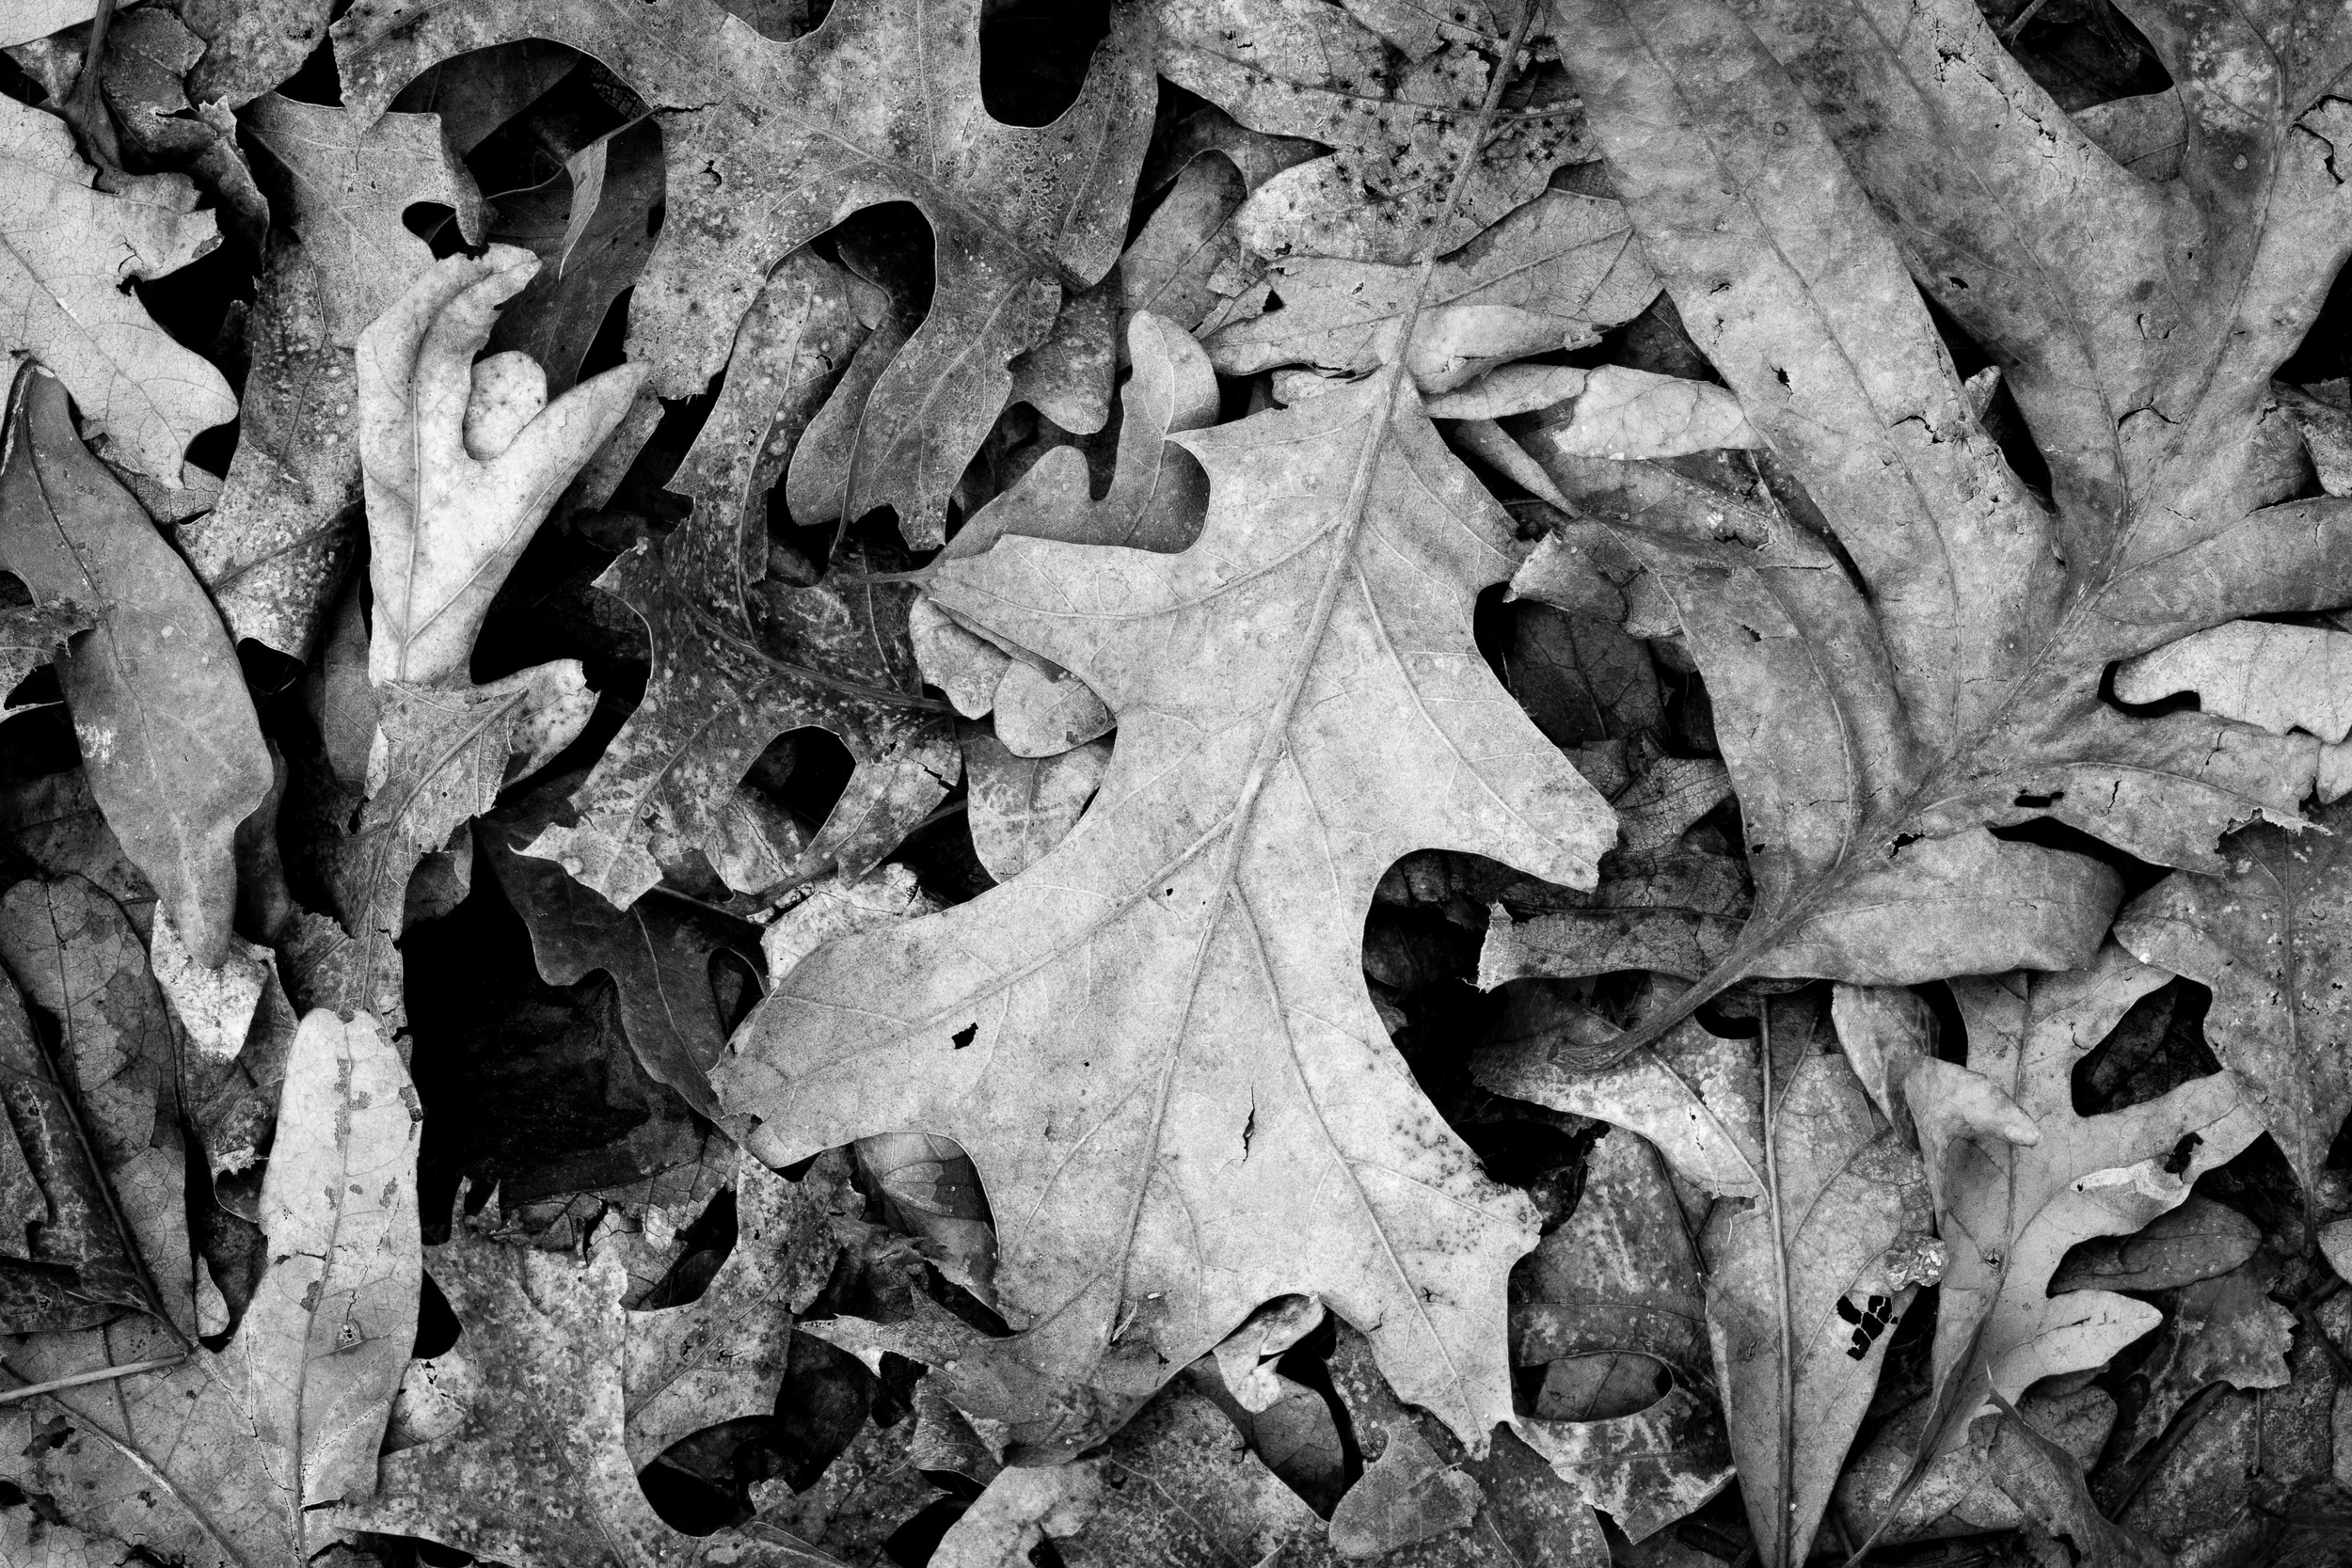 Converted to B&W in Lightroom 4.